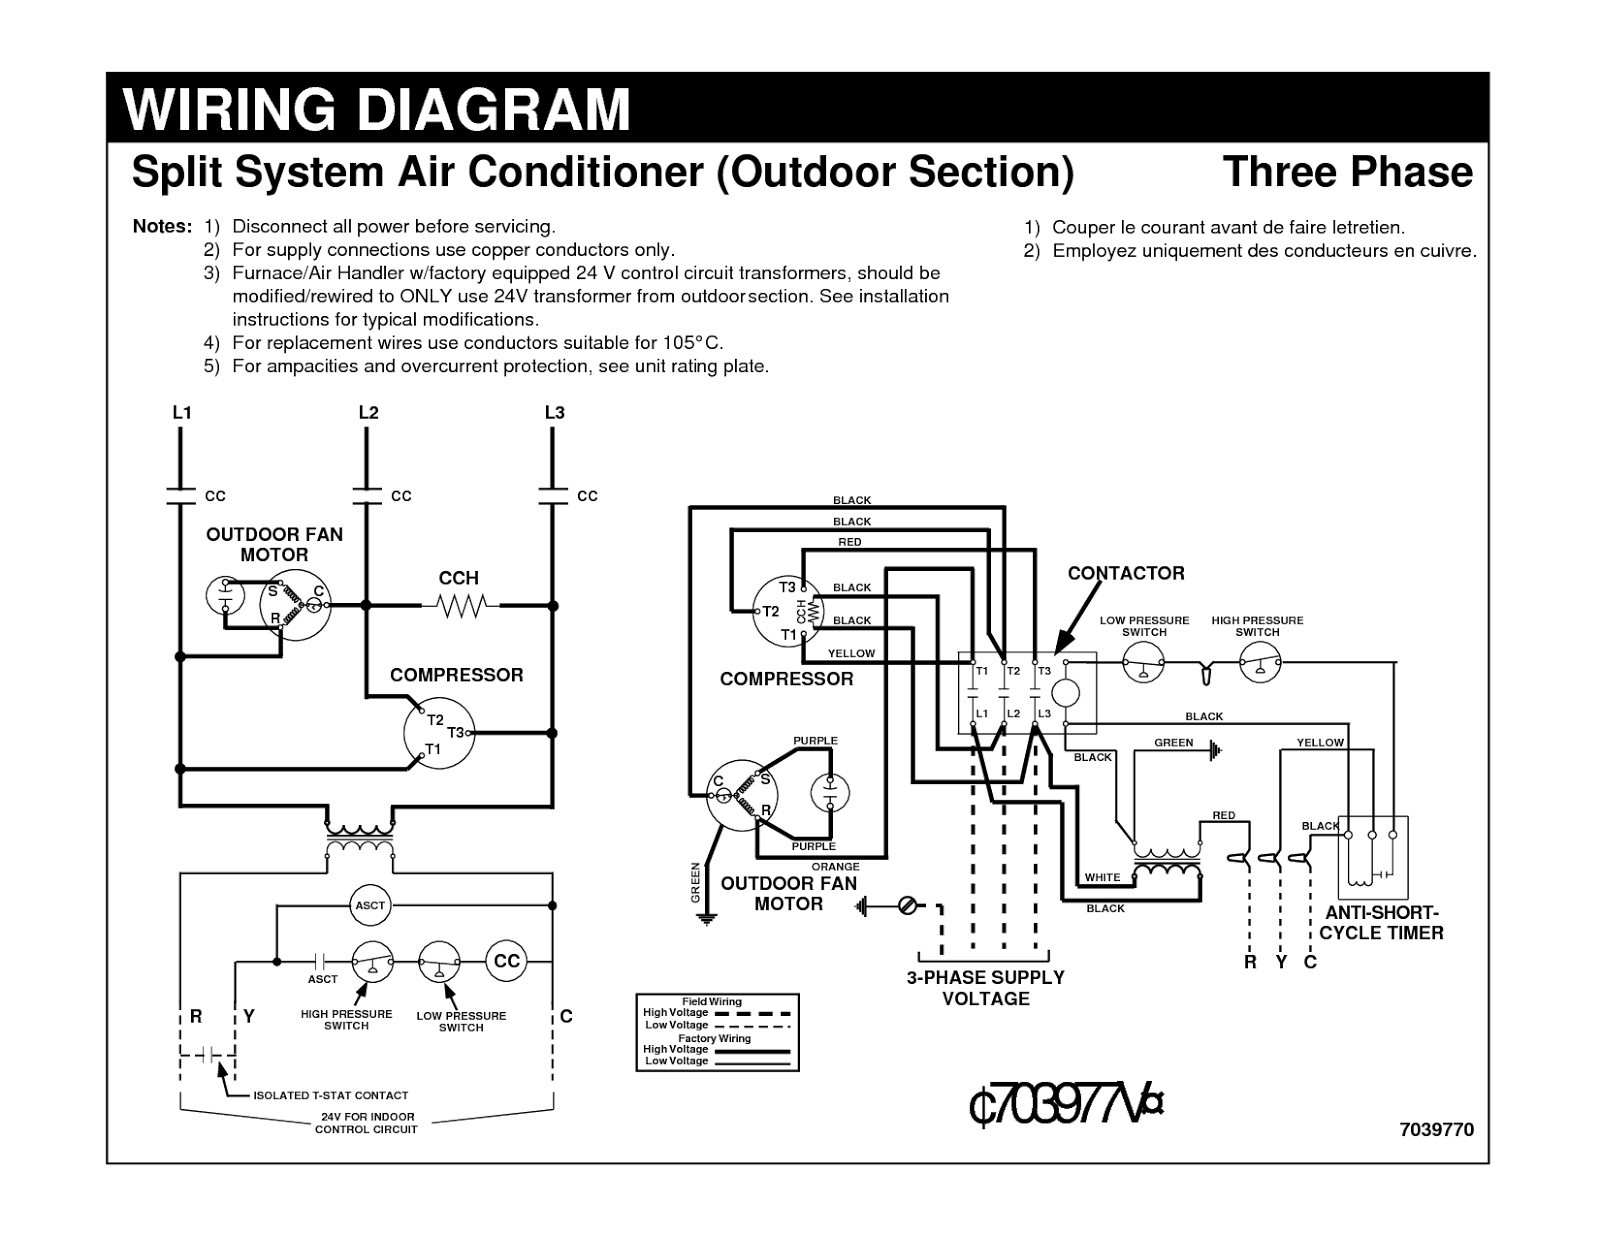 Ac Compressor Capacitor Wiring Diagram